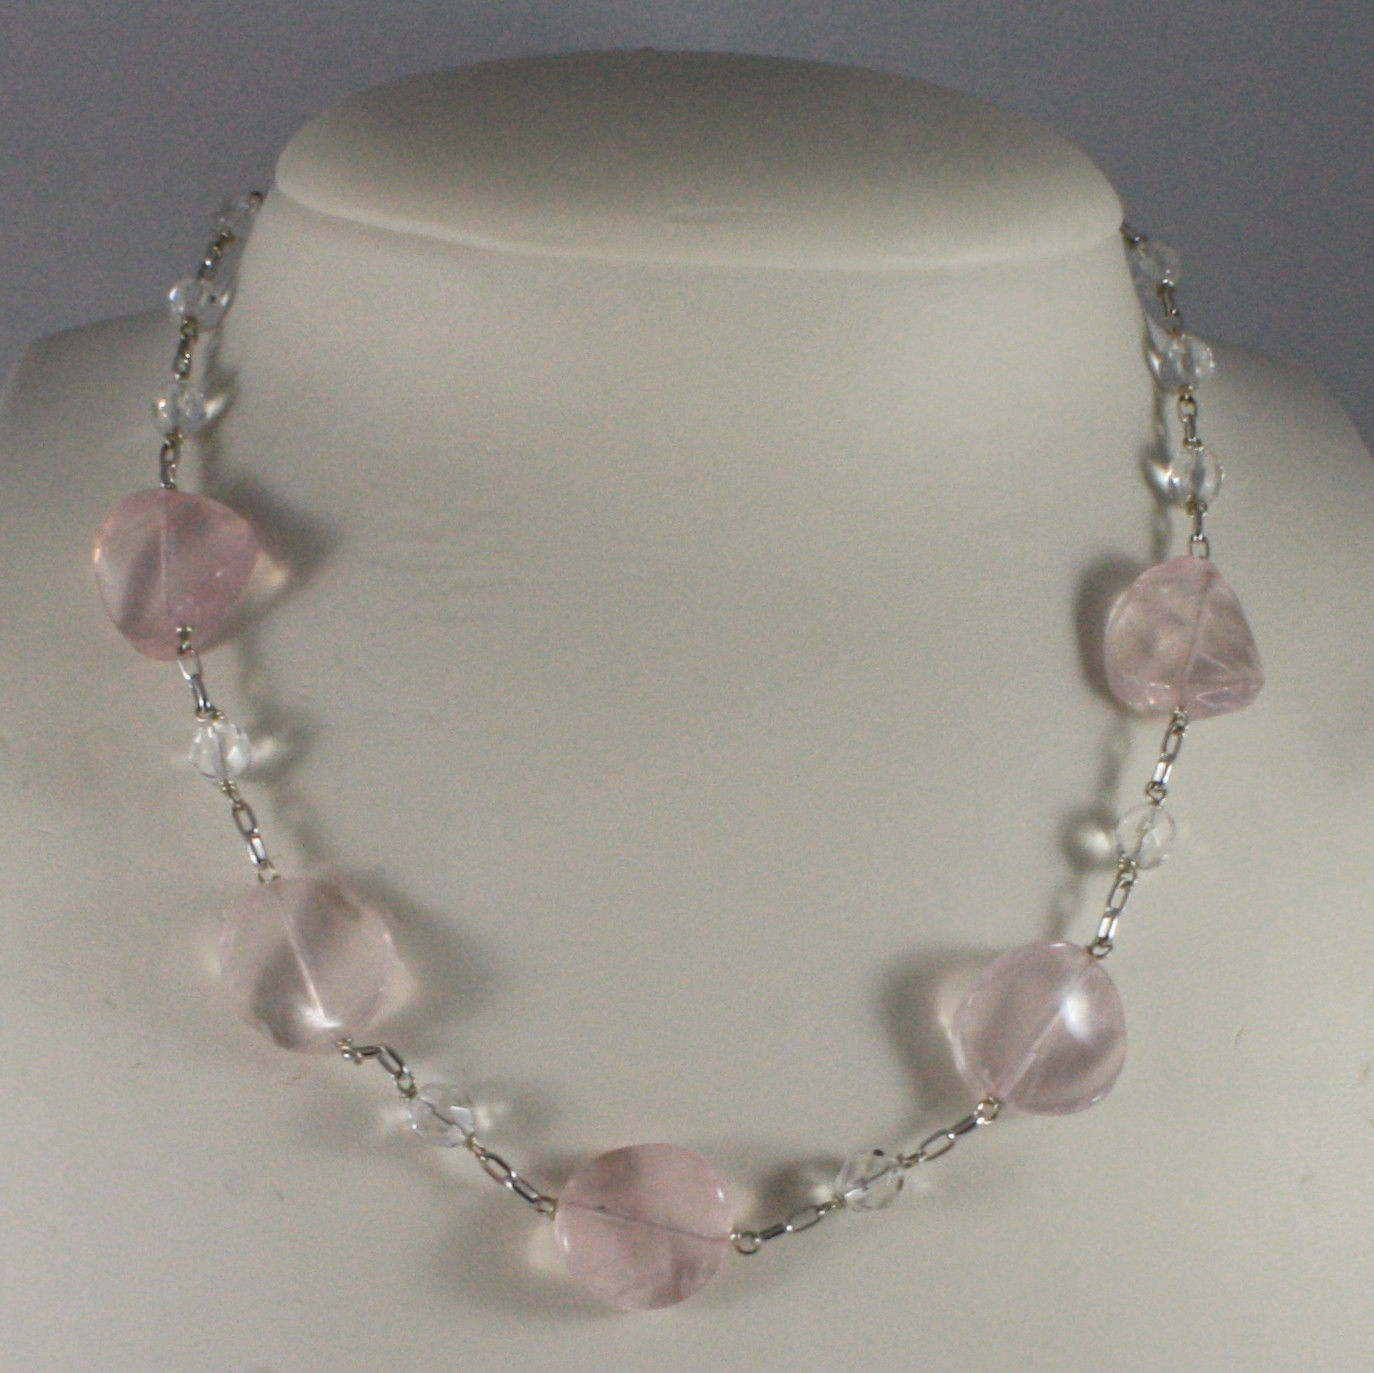 .925 SILVER RHODIUM NECKLACE WITH PINK AND TRANSPARENT CRYSTALS 16,73 IN